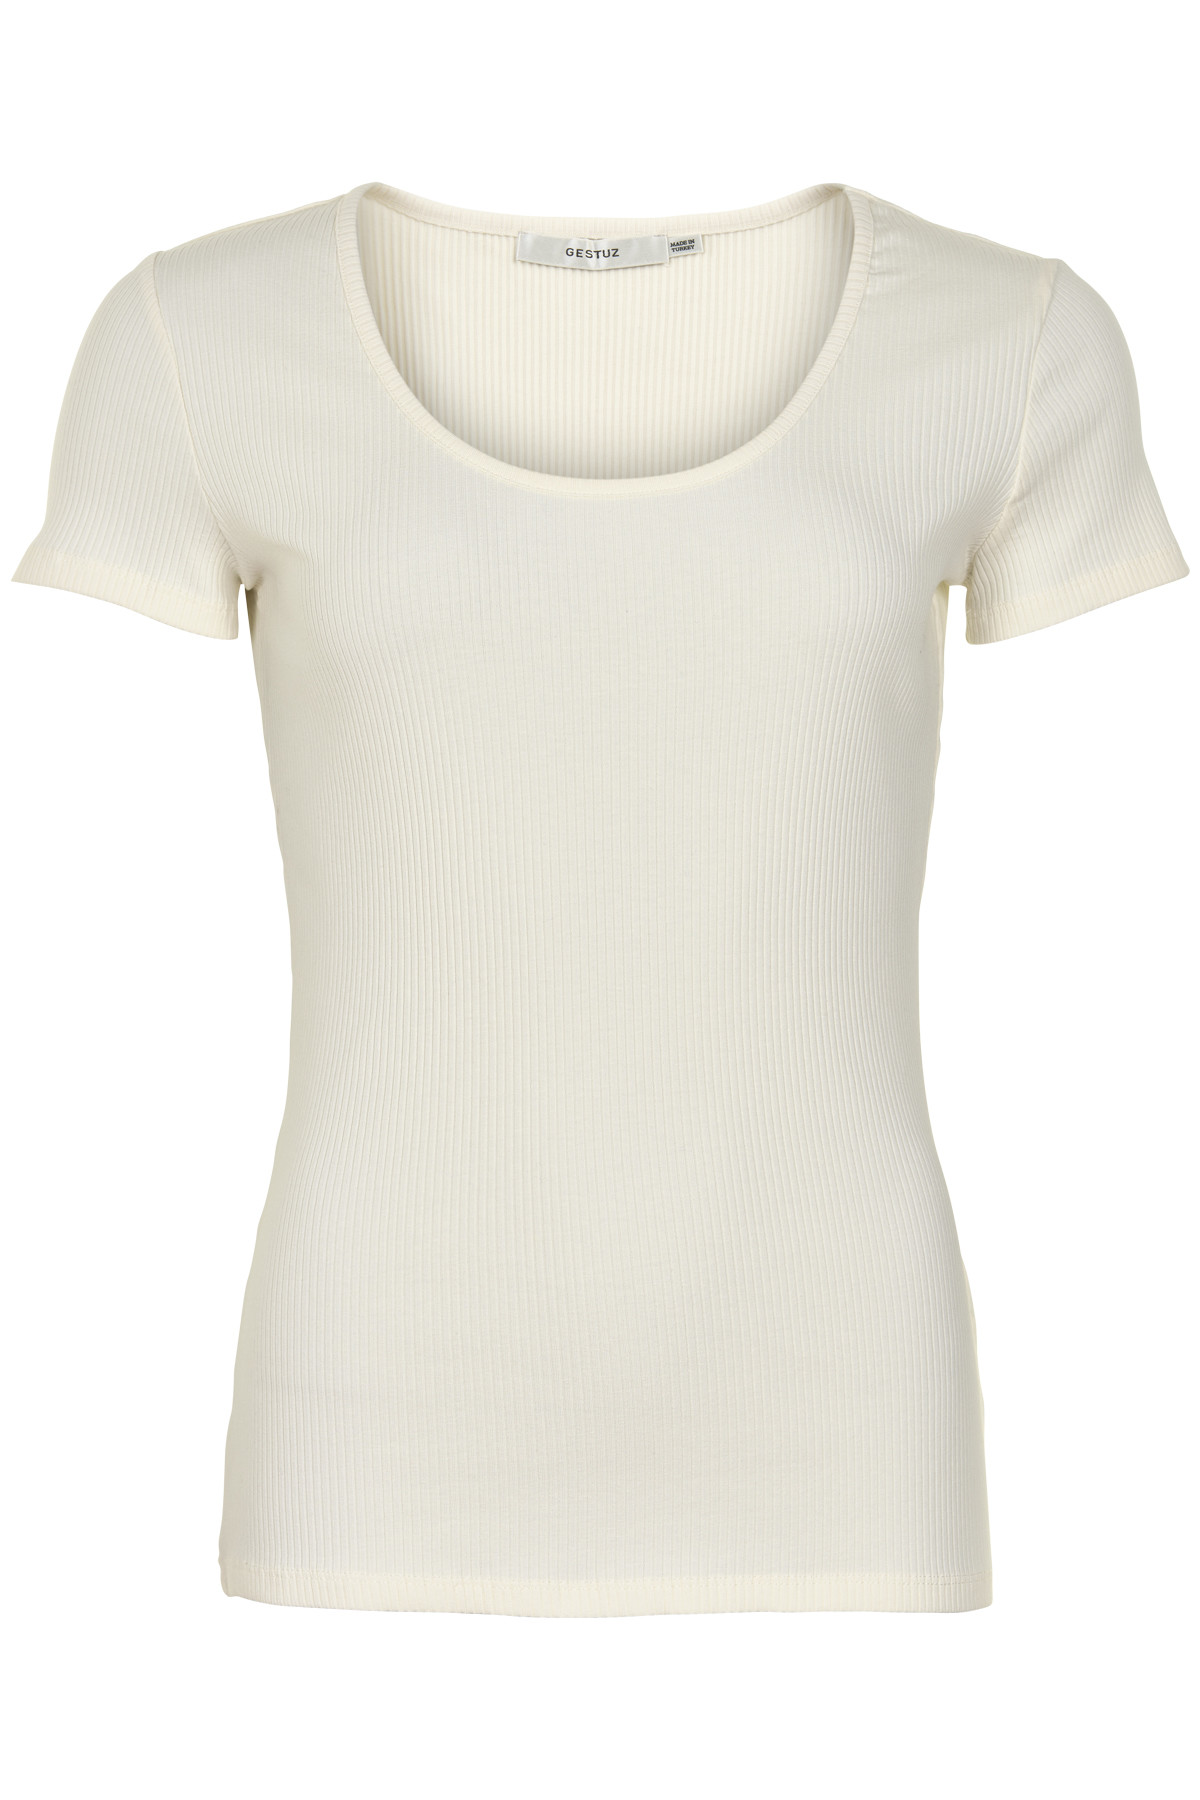 Image of   GESTUZ ROLLA TEE B (Bright White 90014, XL)